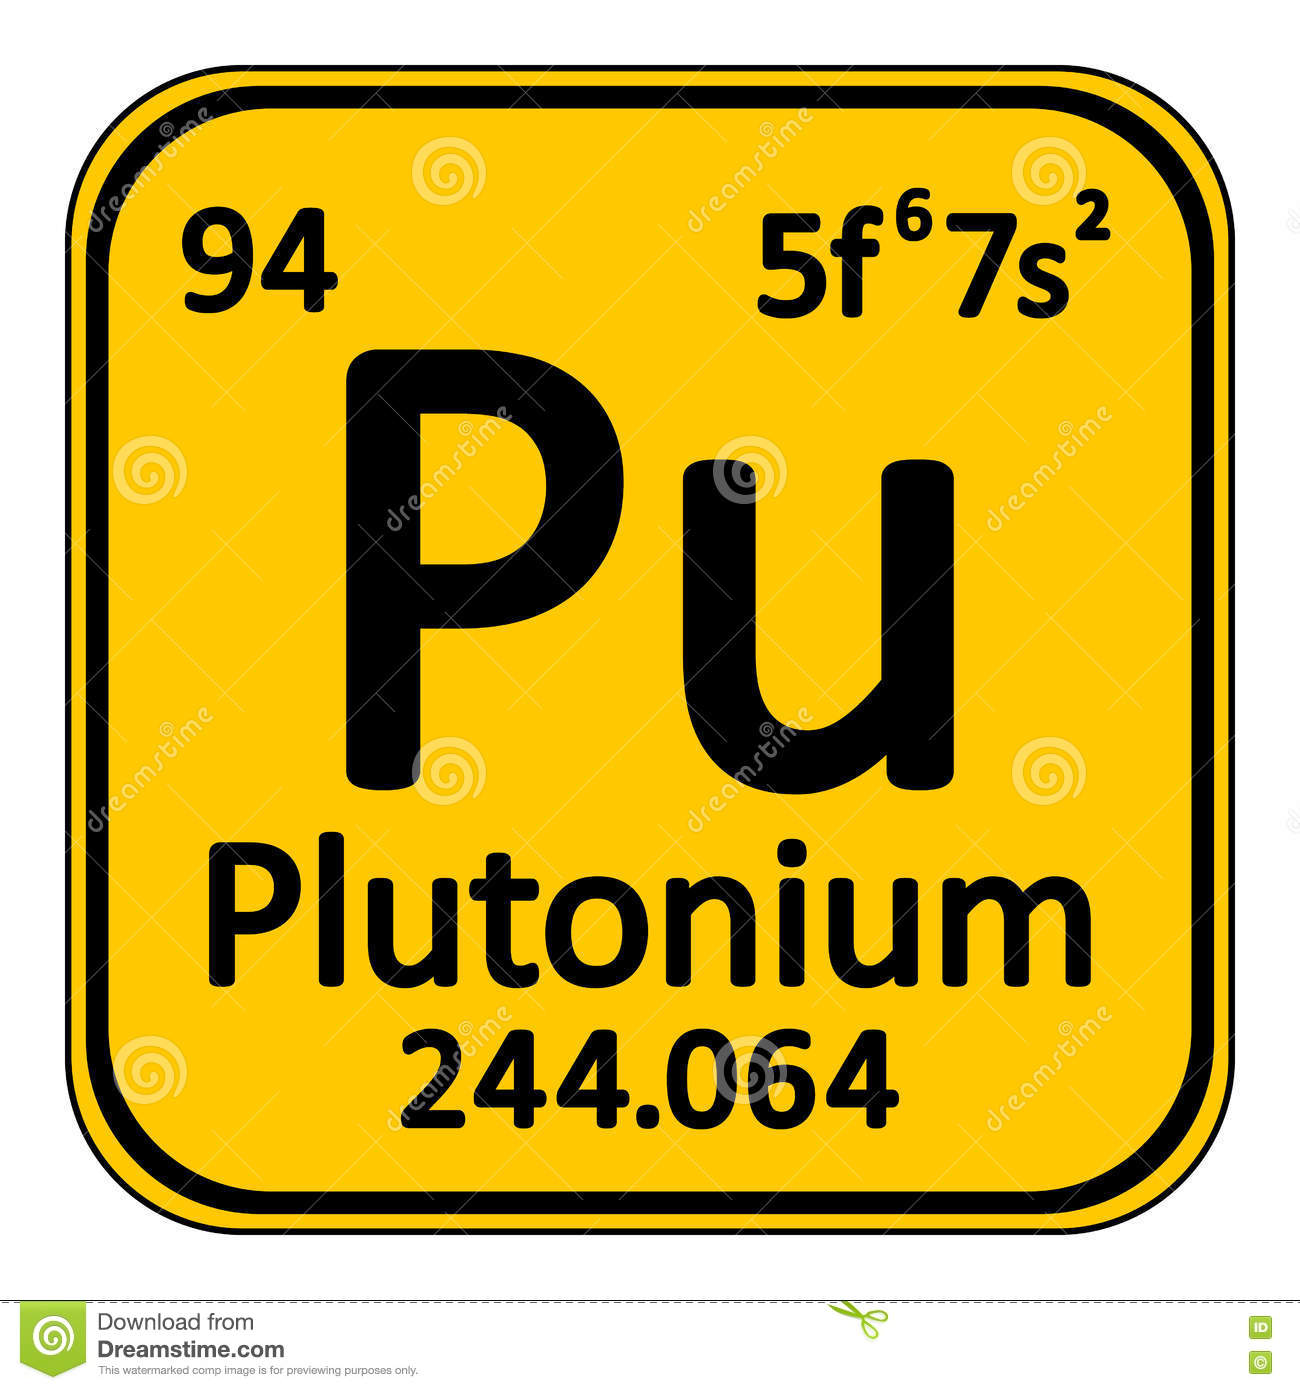 Periodic table element plutonium icon stock illustration image royalty free illustration download periodic table element plutonium gamestrikefo Image collections